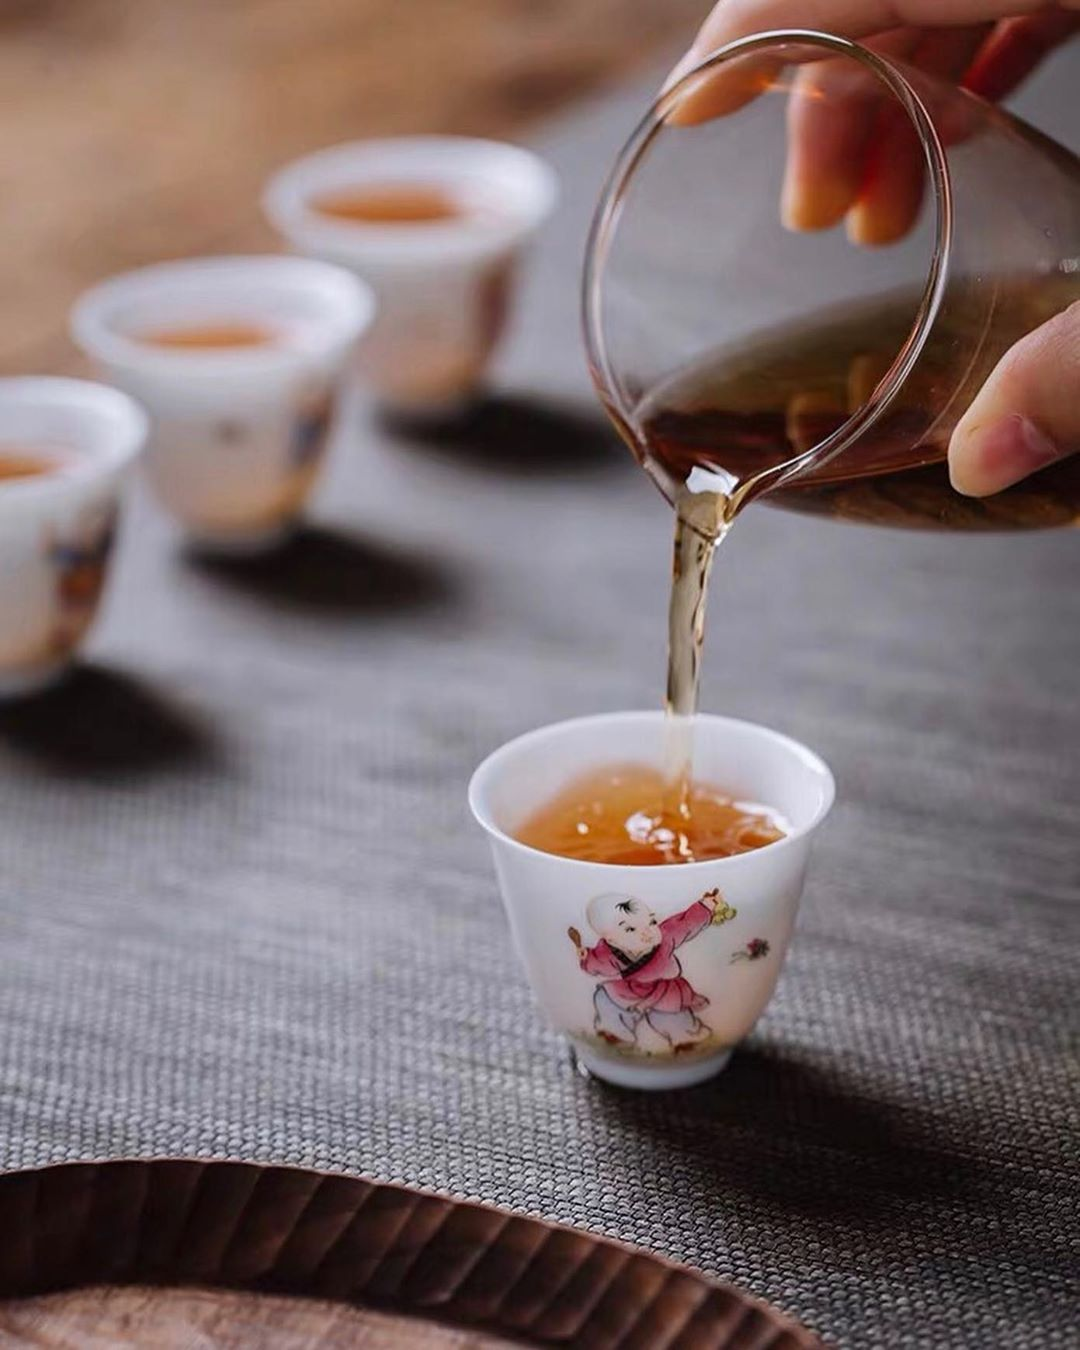 Why use exquisite tea sets? That's because it makes you feel pleasure and joy. . . .